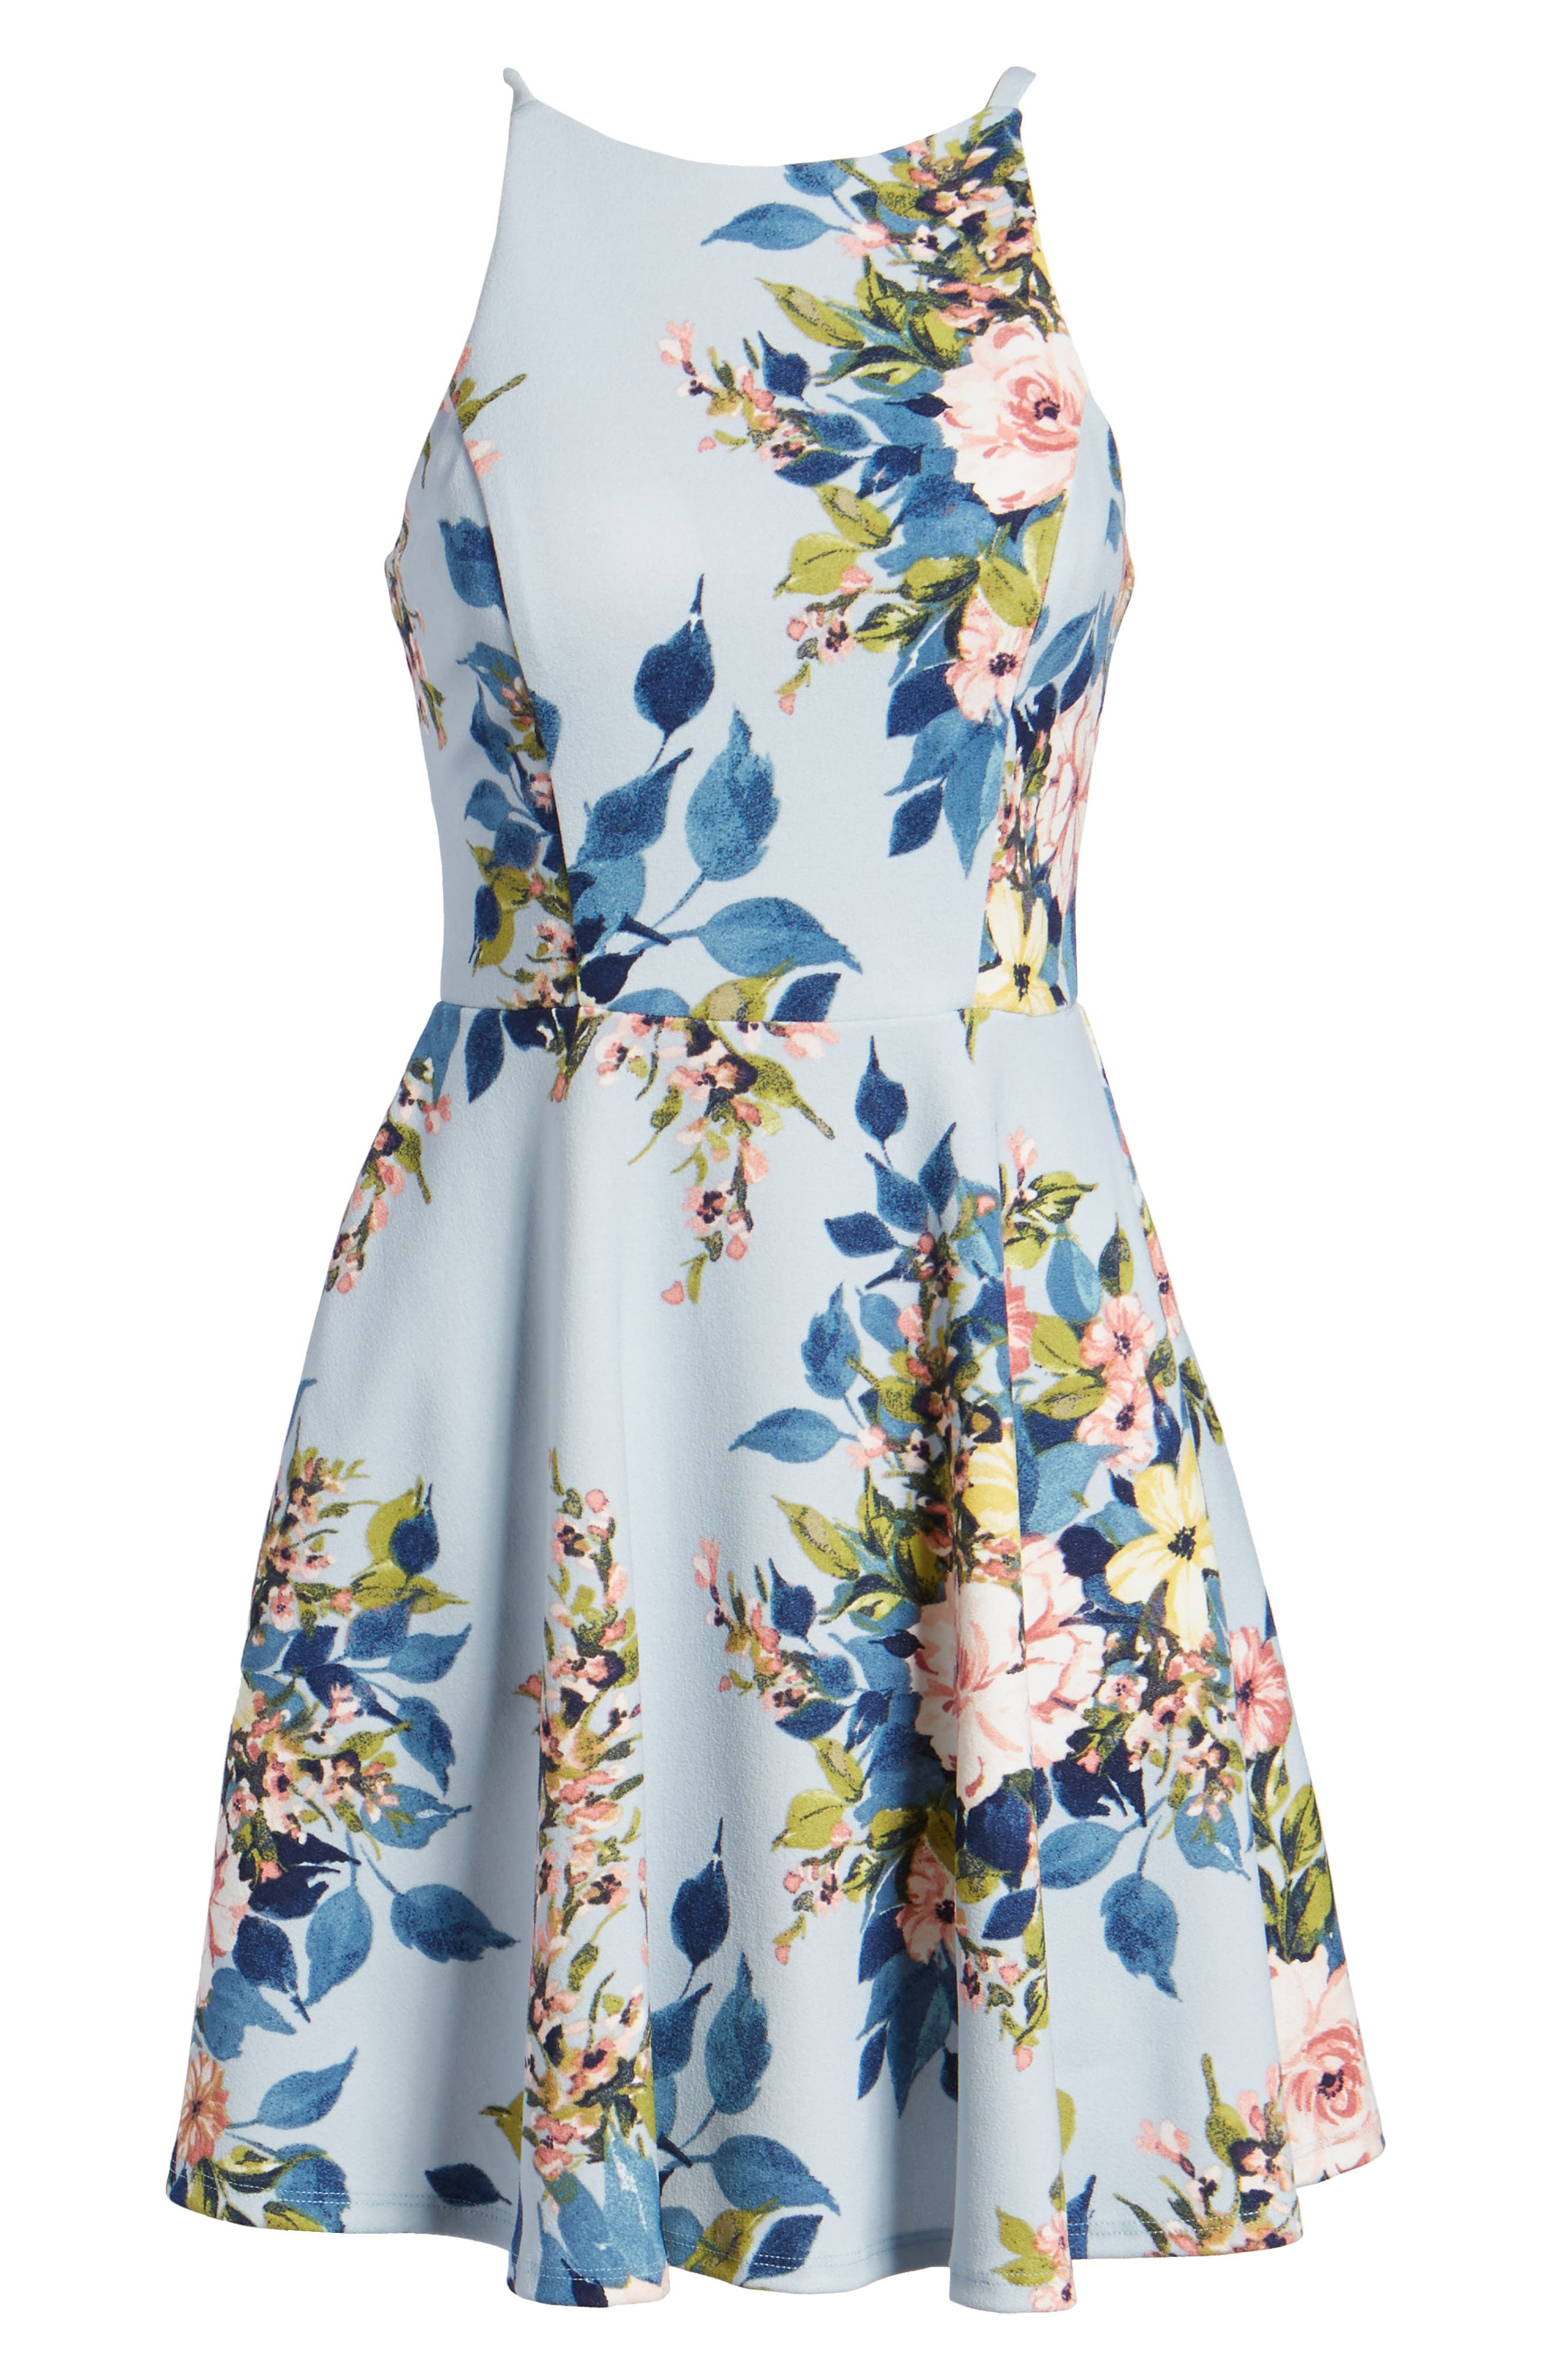 Floral Skater Dress,                             Alternate thumbnail 6, color,                             Blue/ Rose